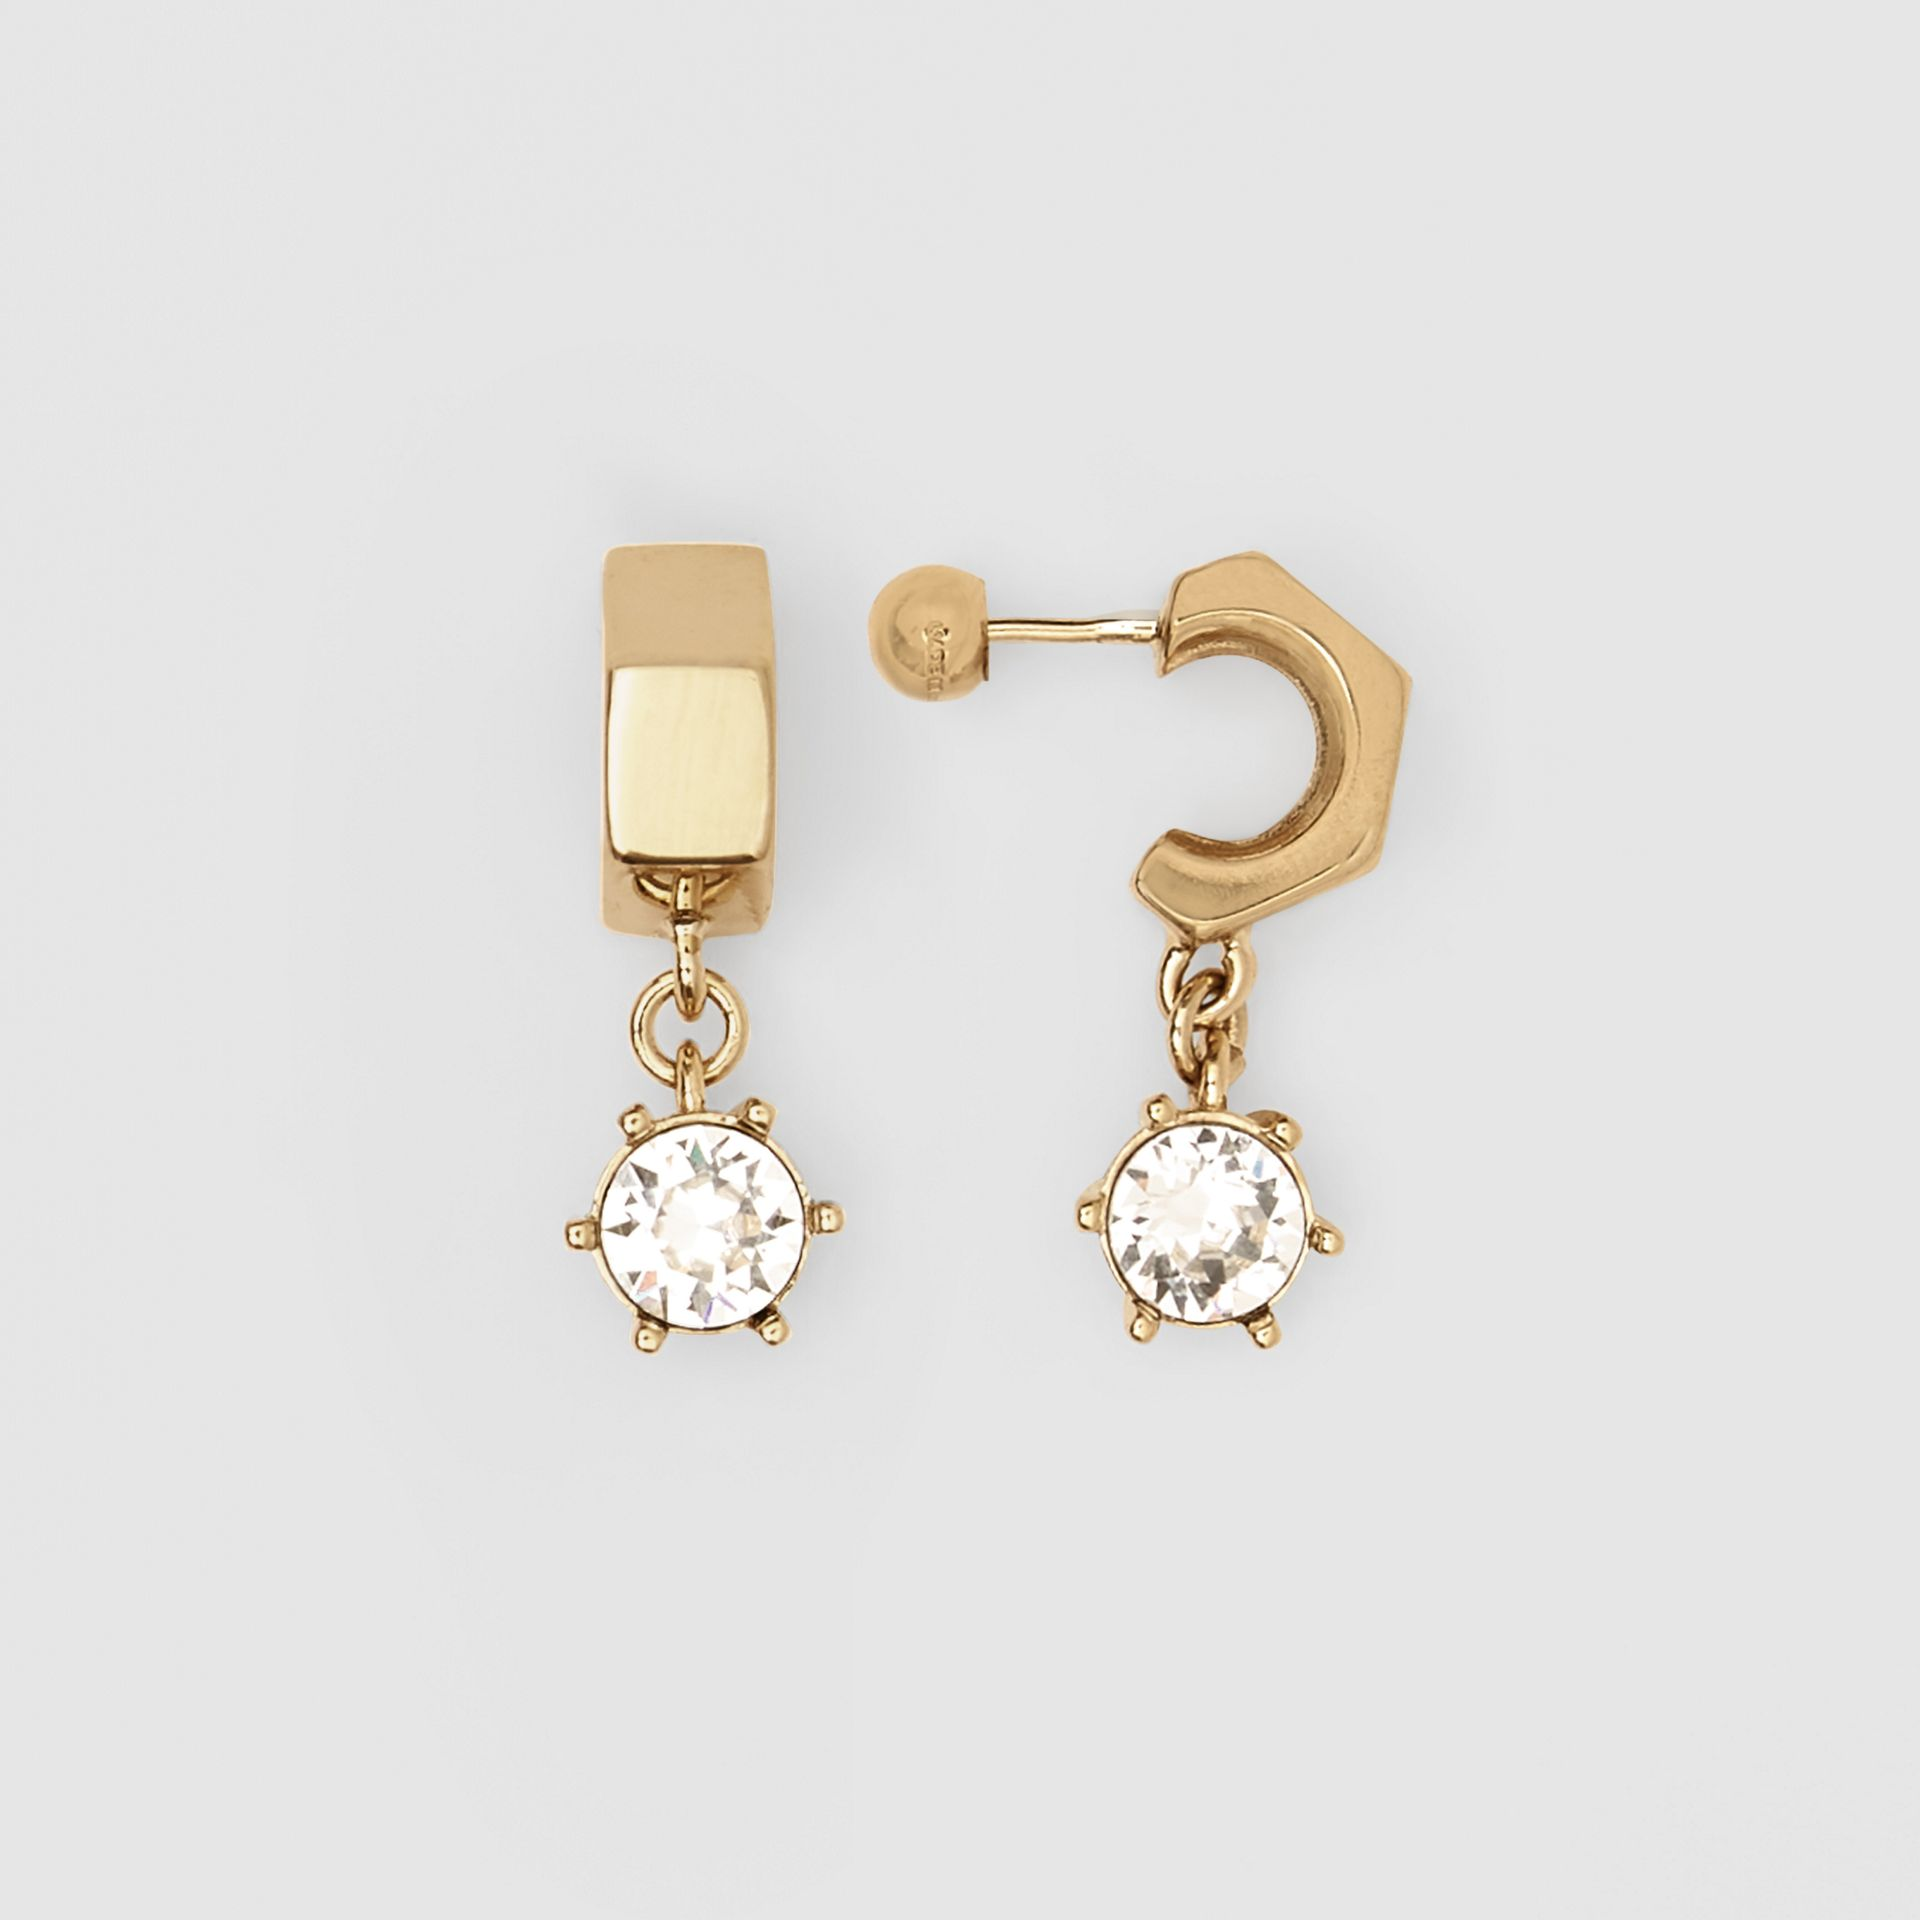 Crystal Charm Gold-plated Nut Earrings in Light - Women | Burberry - gallery image 3